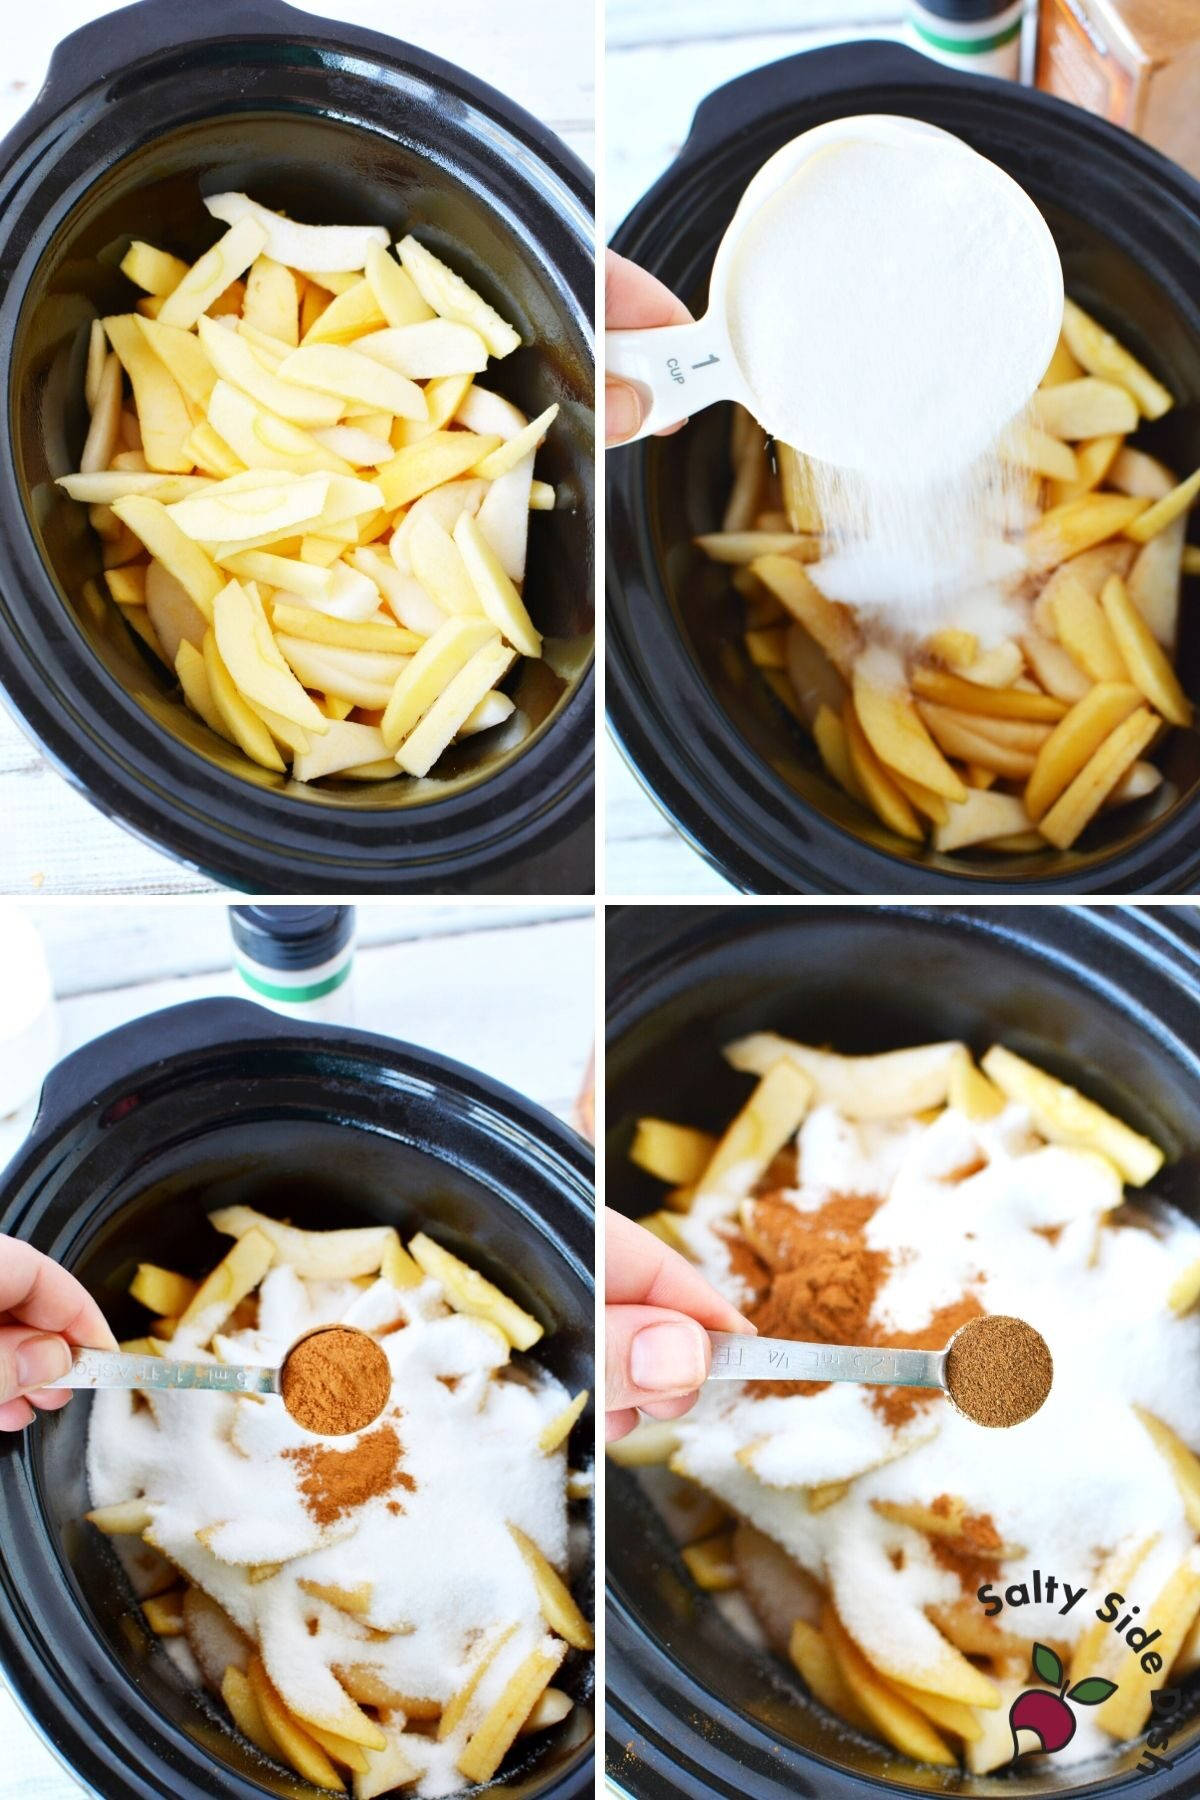 add sugar, cinnamon, and all spices with apples into a crock pot for cooking